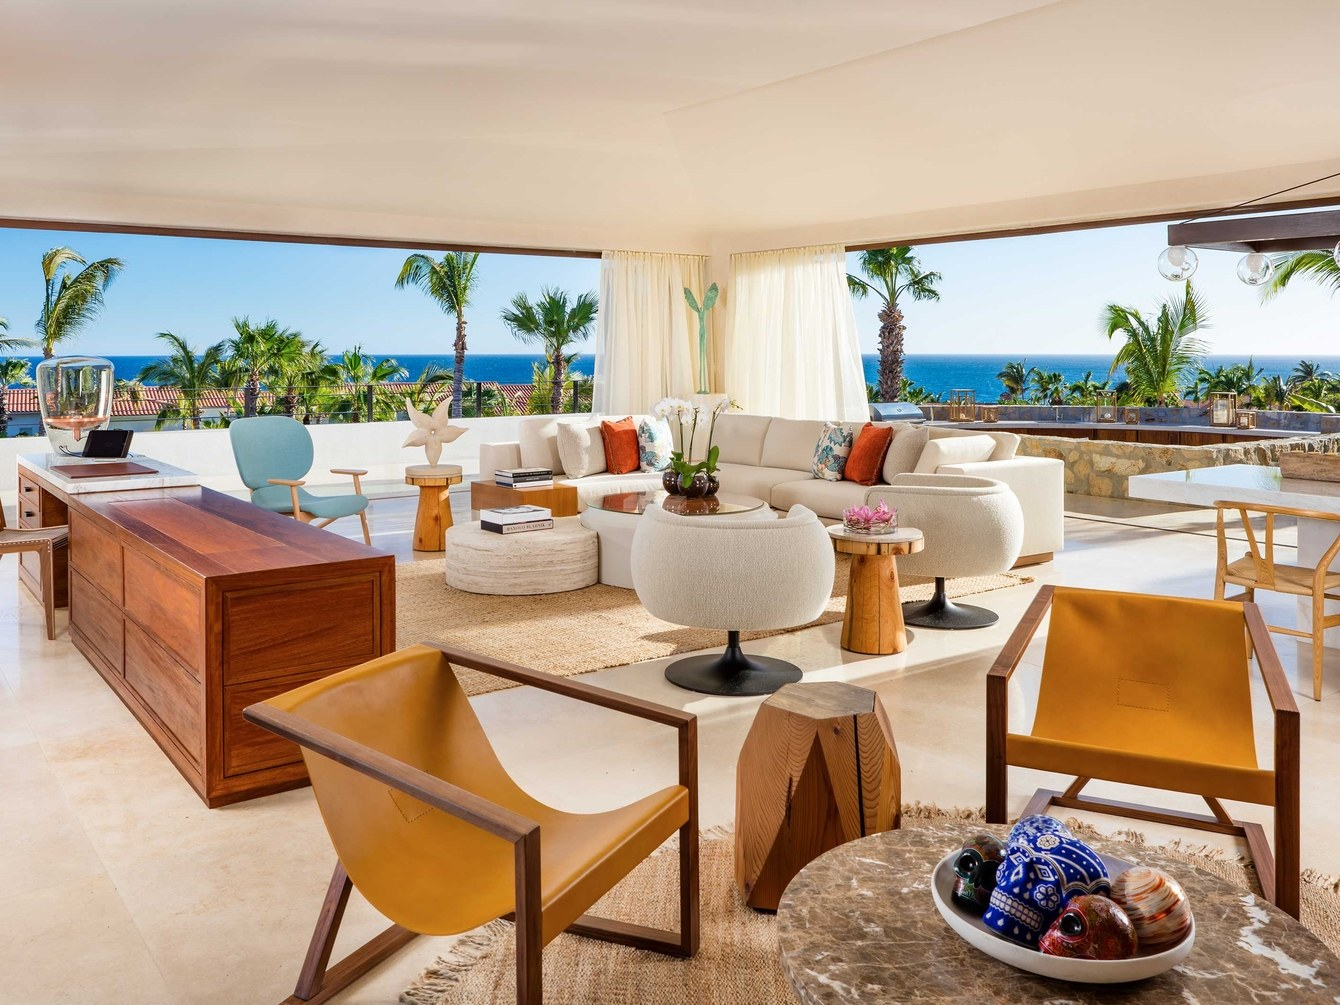 The Most Expensive Suite at Cabo's One&Only Palmilla Resort by AD